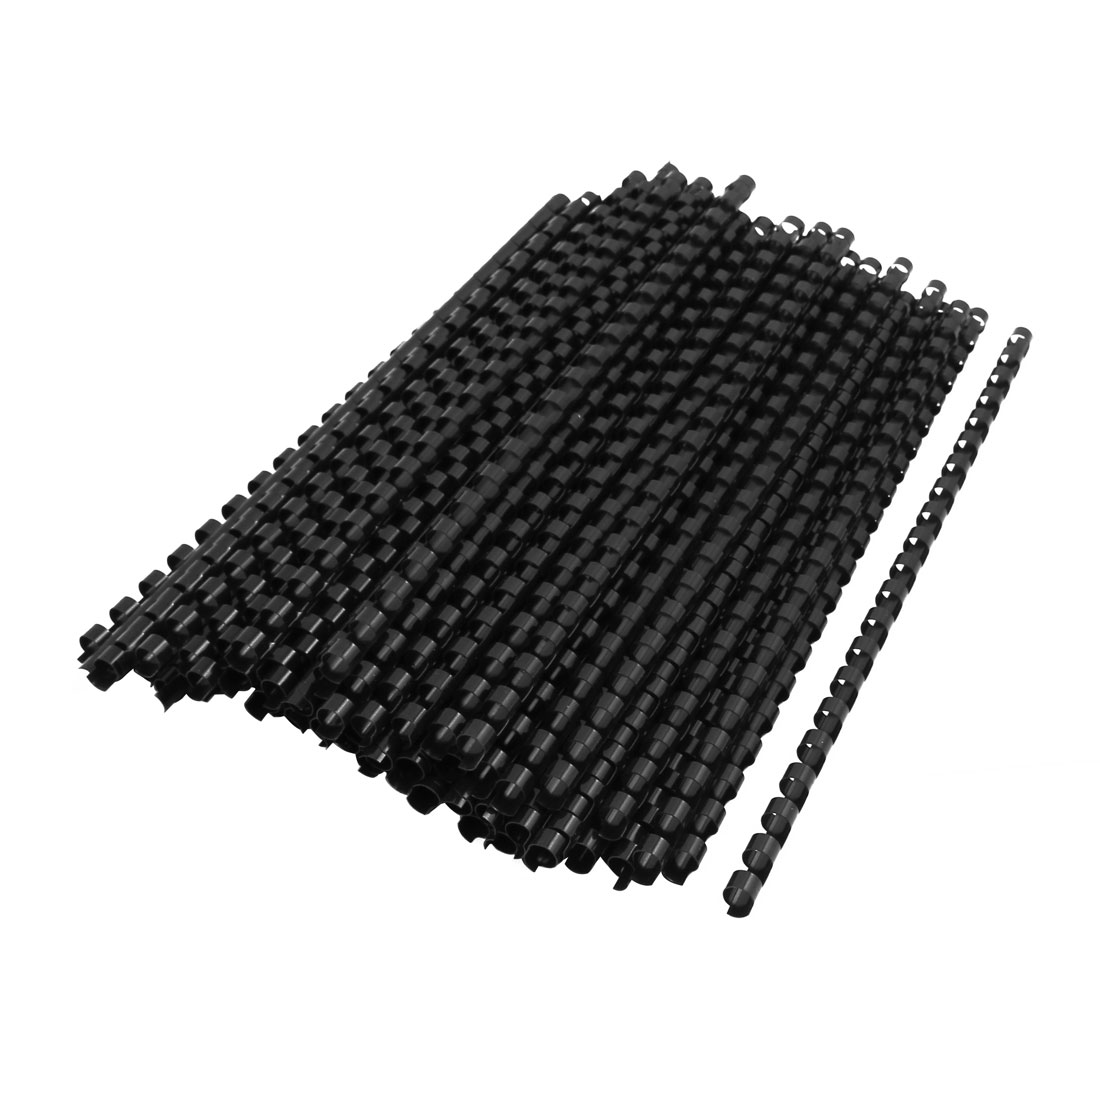 Office School Plastic Spines Binding Combs 8mm Dia 21 Rings Black 100 Pcs